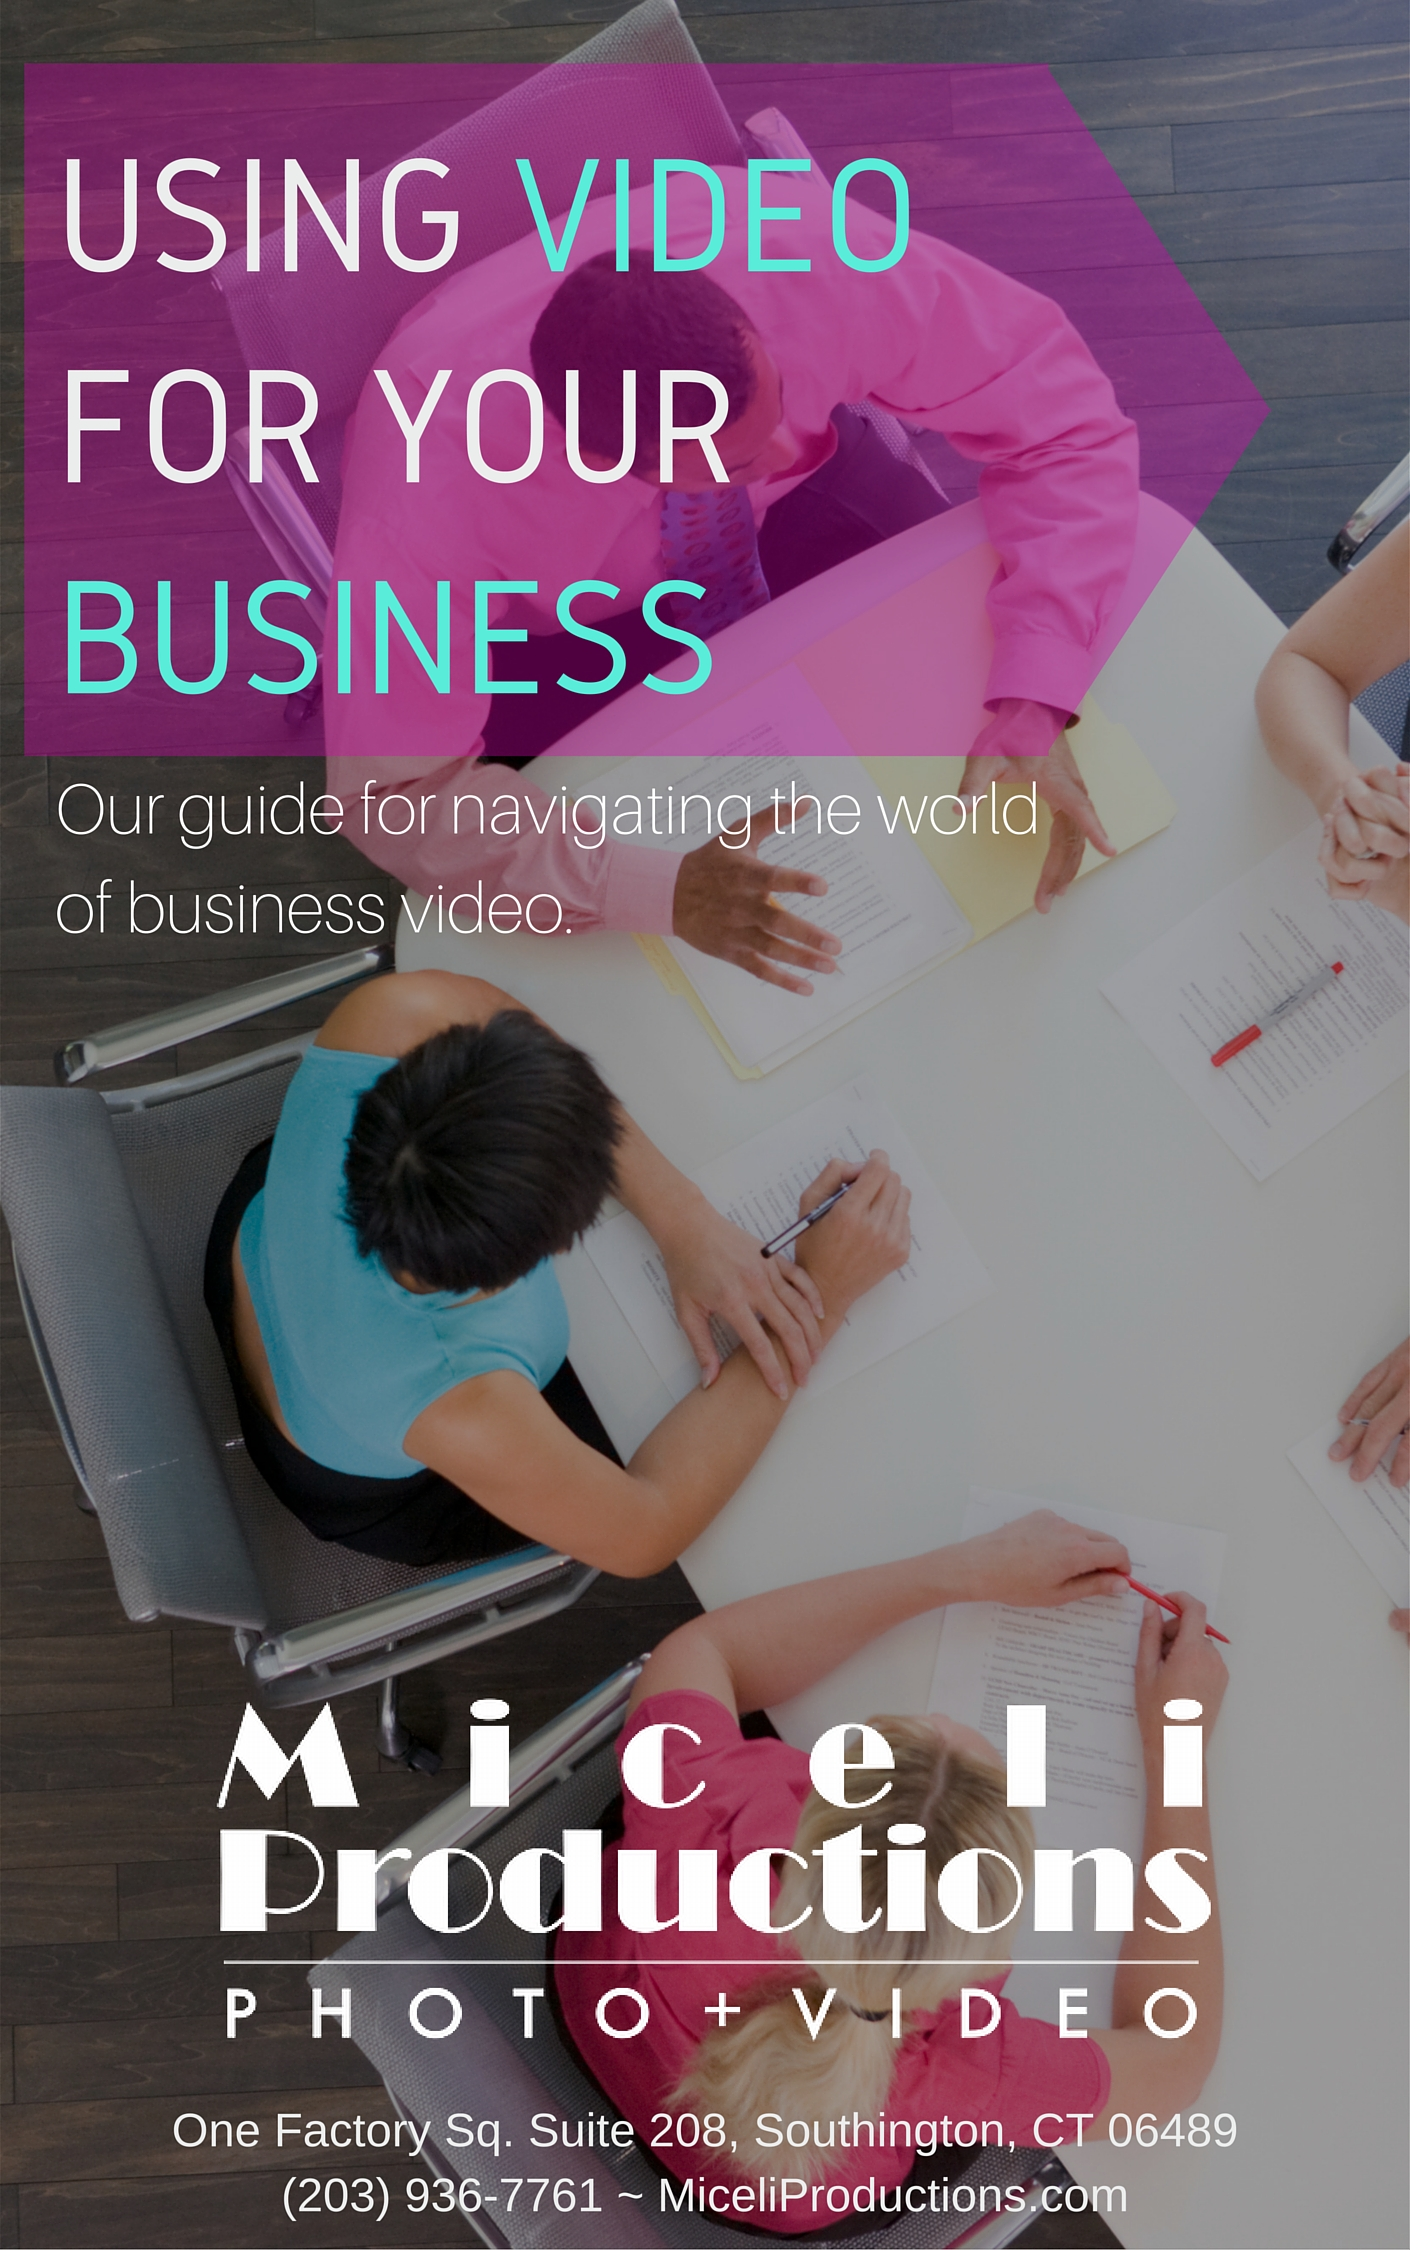 Miceli Productions e-book: using video for your business.